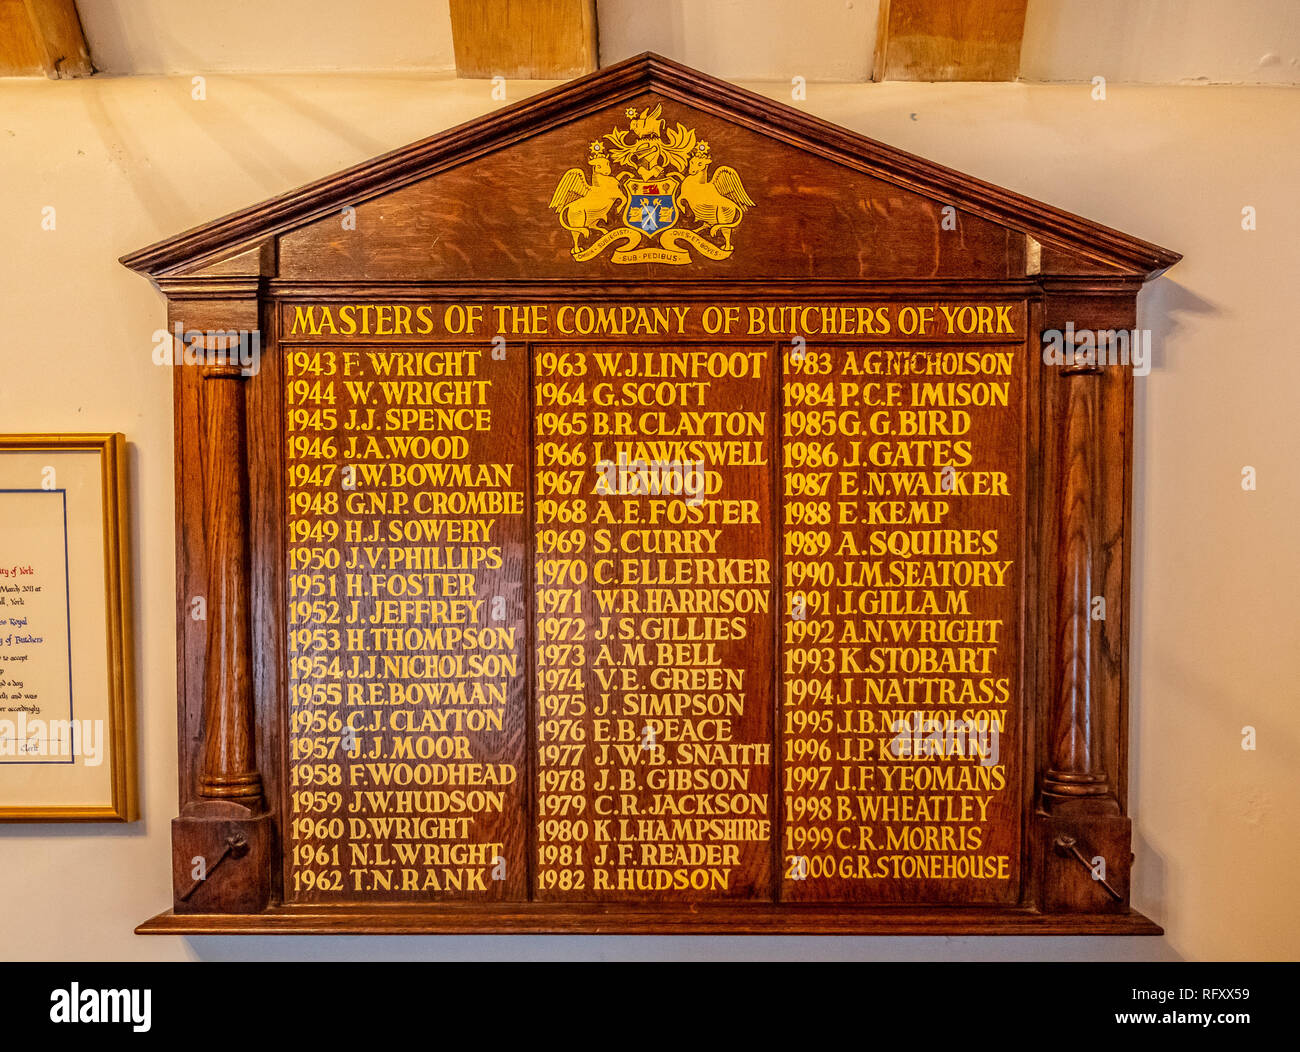 Company of Butcher's Plaque, Jacob's Well, Medieval building and the parish room for the Priory Church of the Holy Trinity, Micklegate, York, UK. - Stock Image